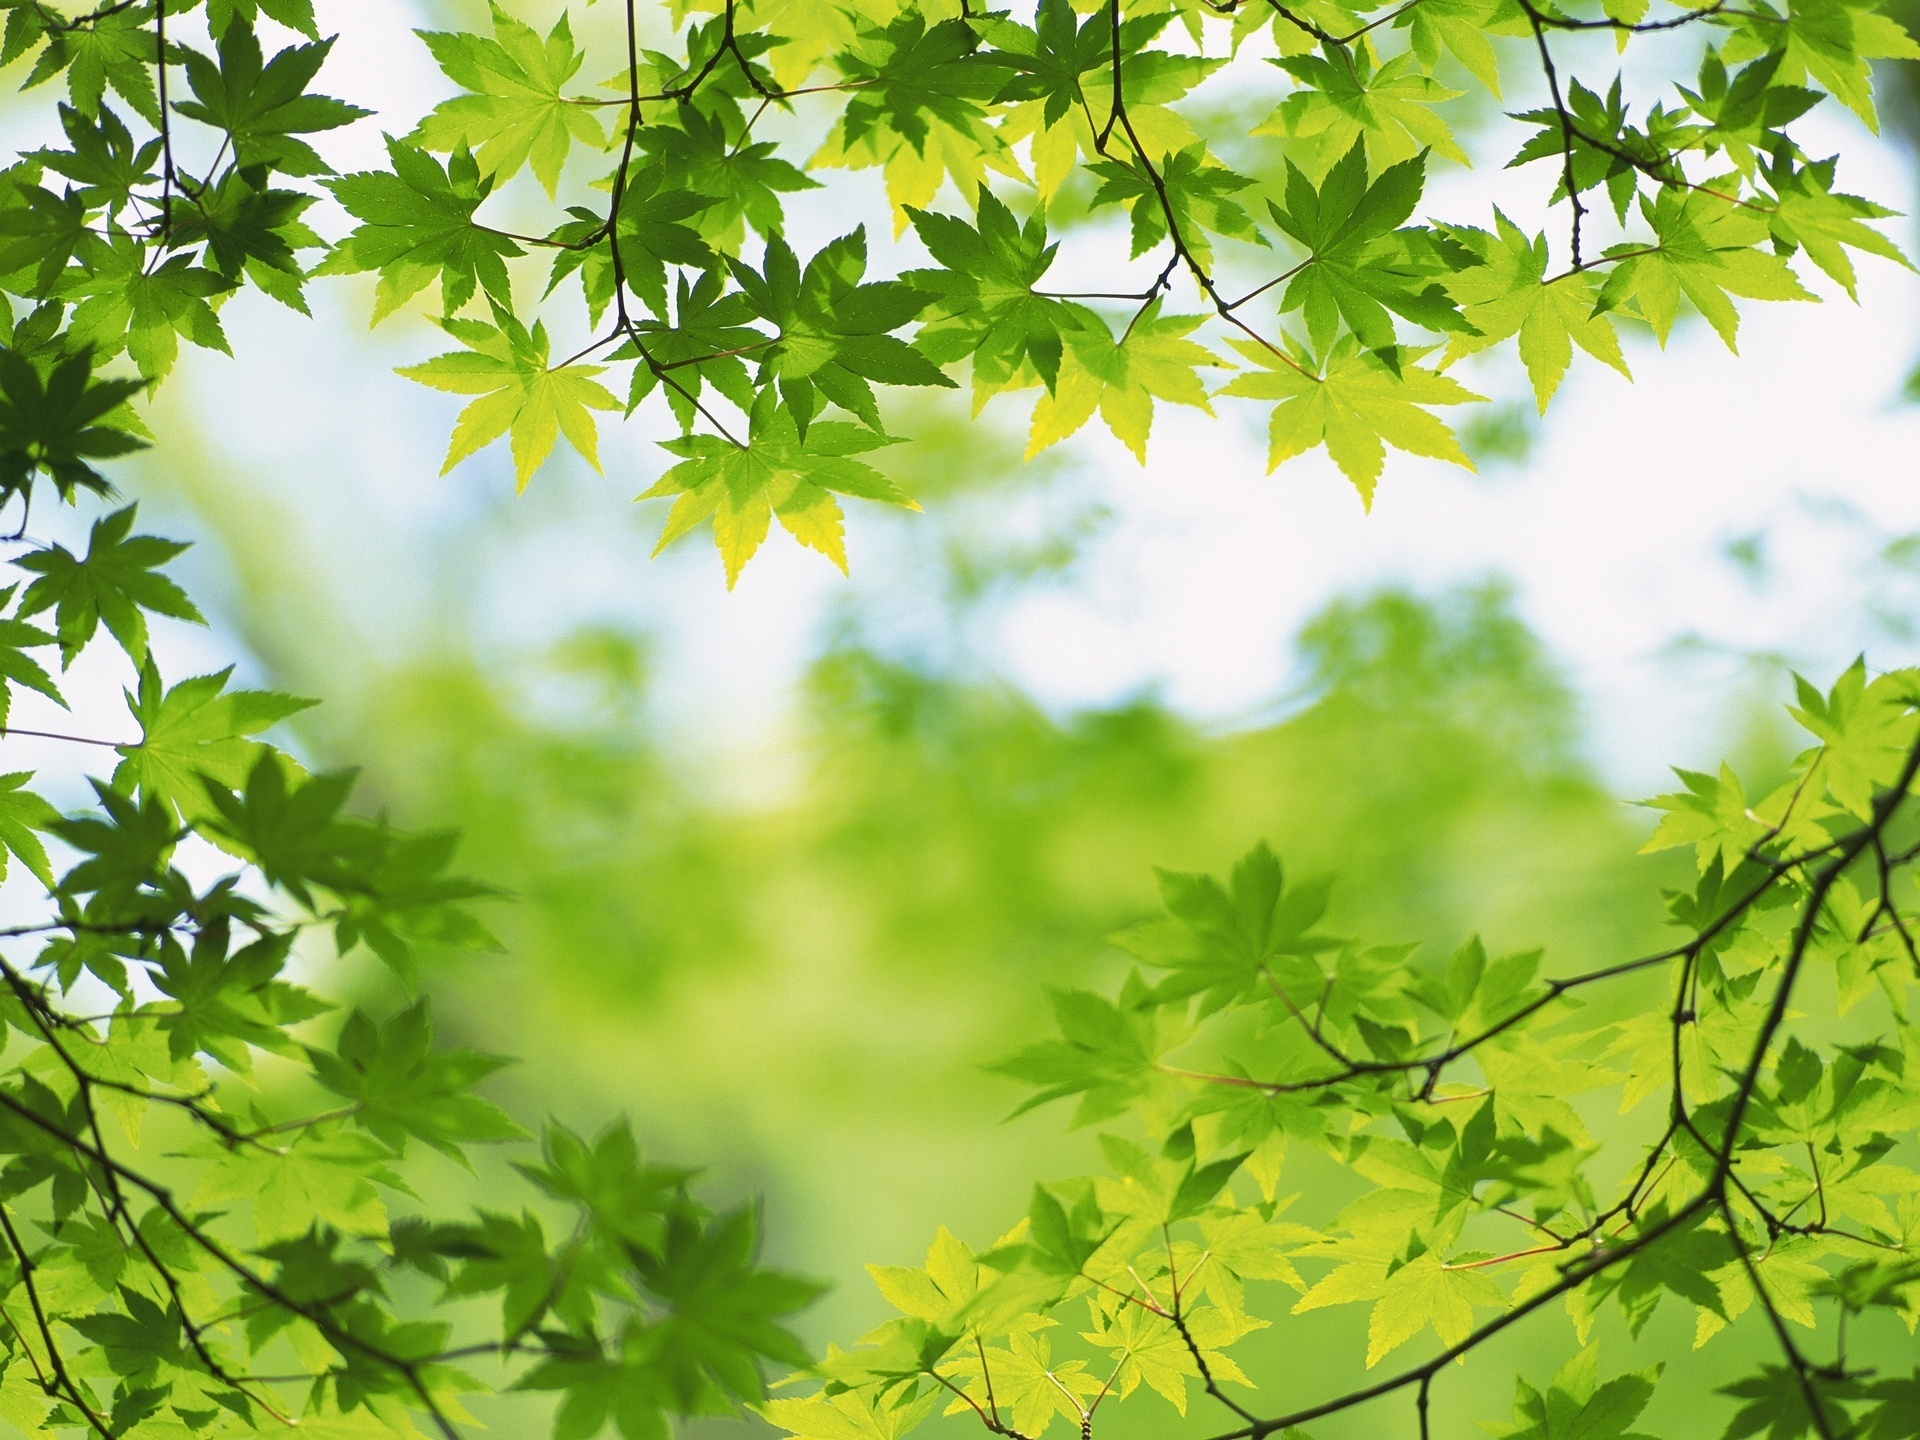 Green images Green leaves HD wallpaper and background 1920x1440